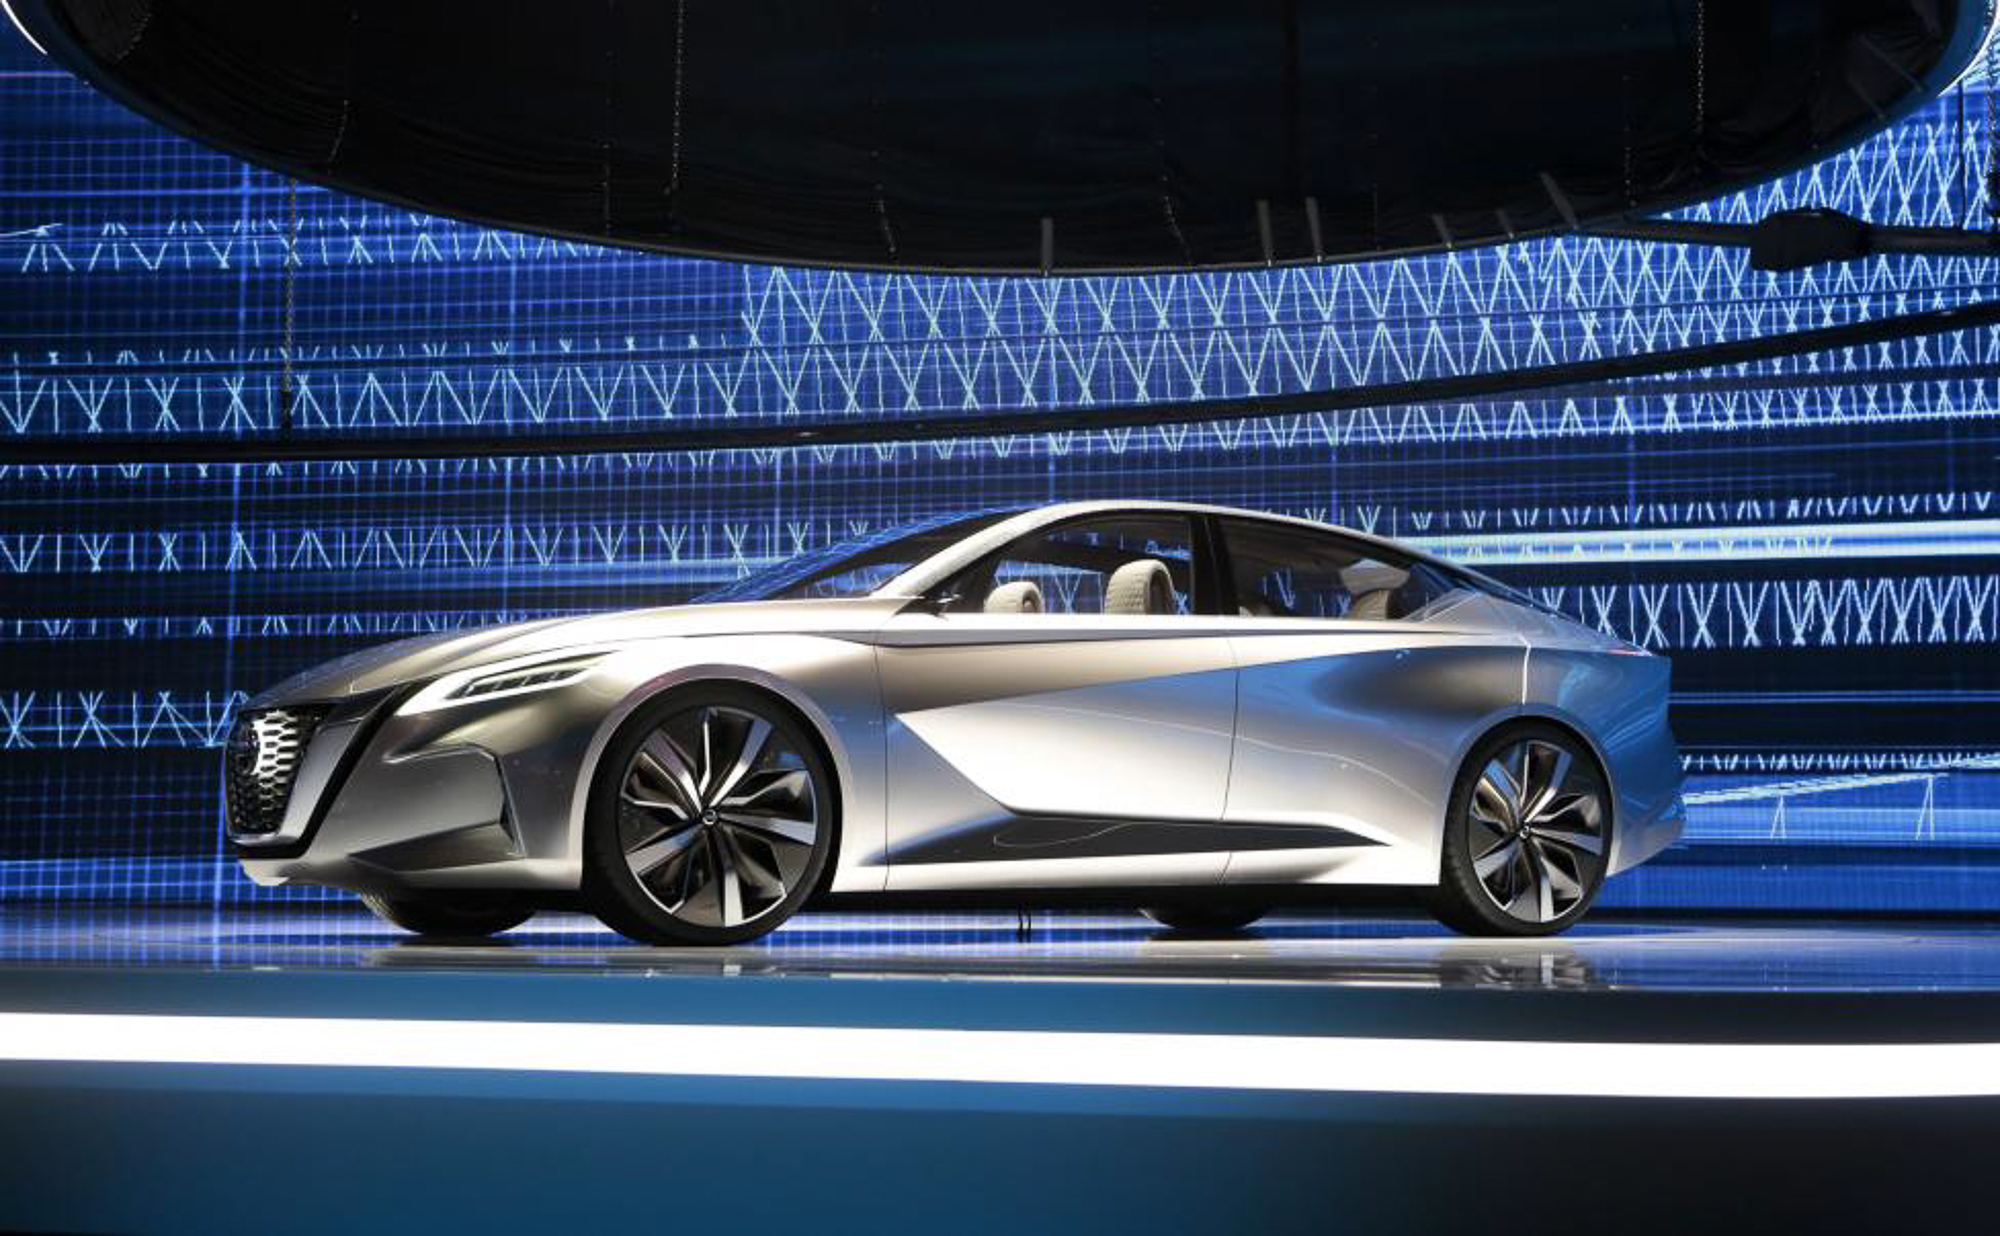 The Nissan Vmotion 2.0 concept car. PHOTO: REUTERS